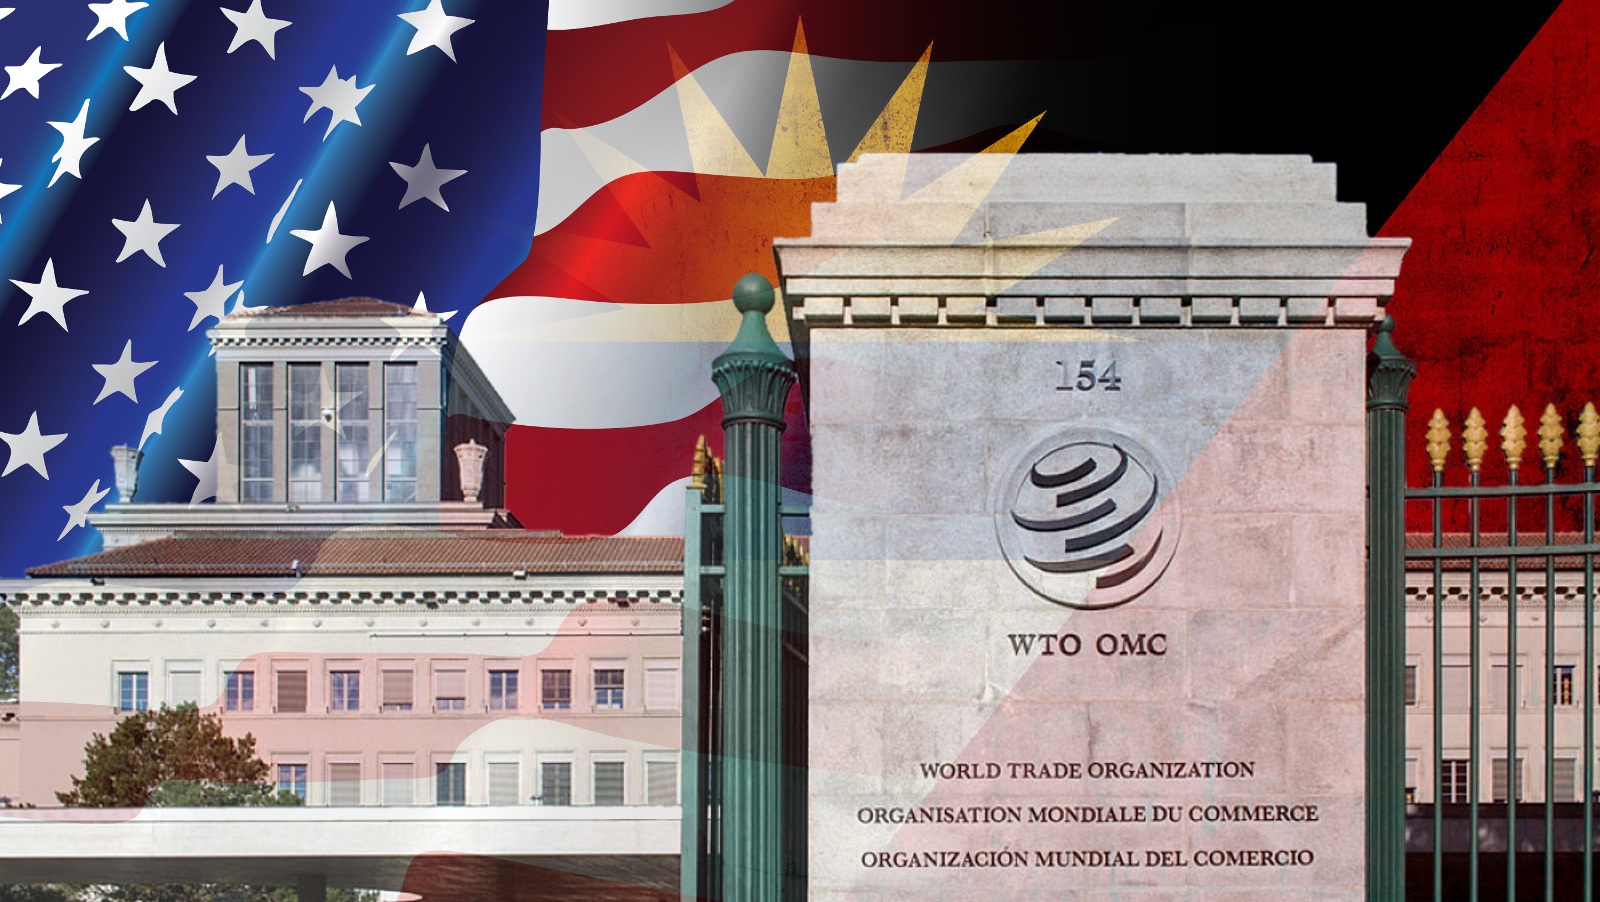 democracy-institute-antigua-america-wto-event-thumb